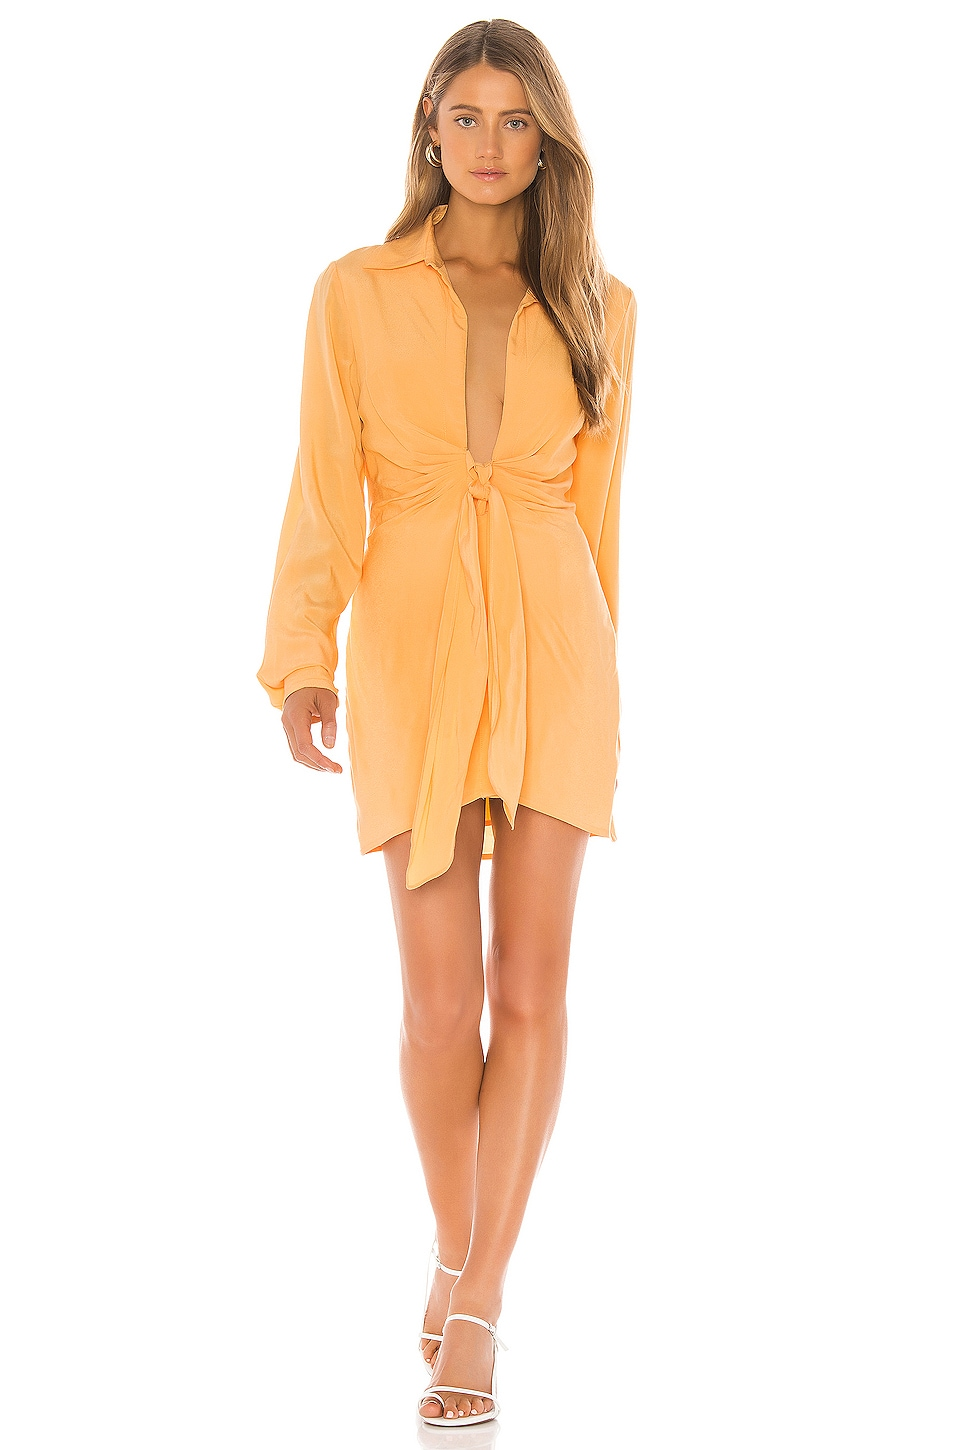 Lovers + Friends ROBE AJA